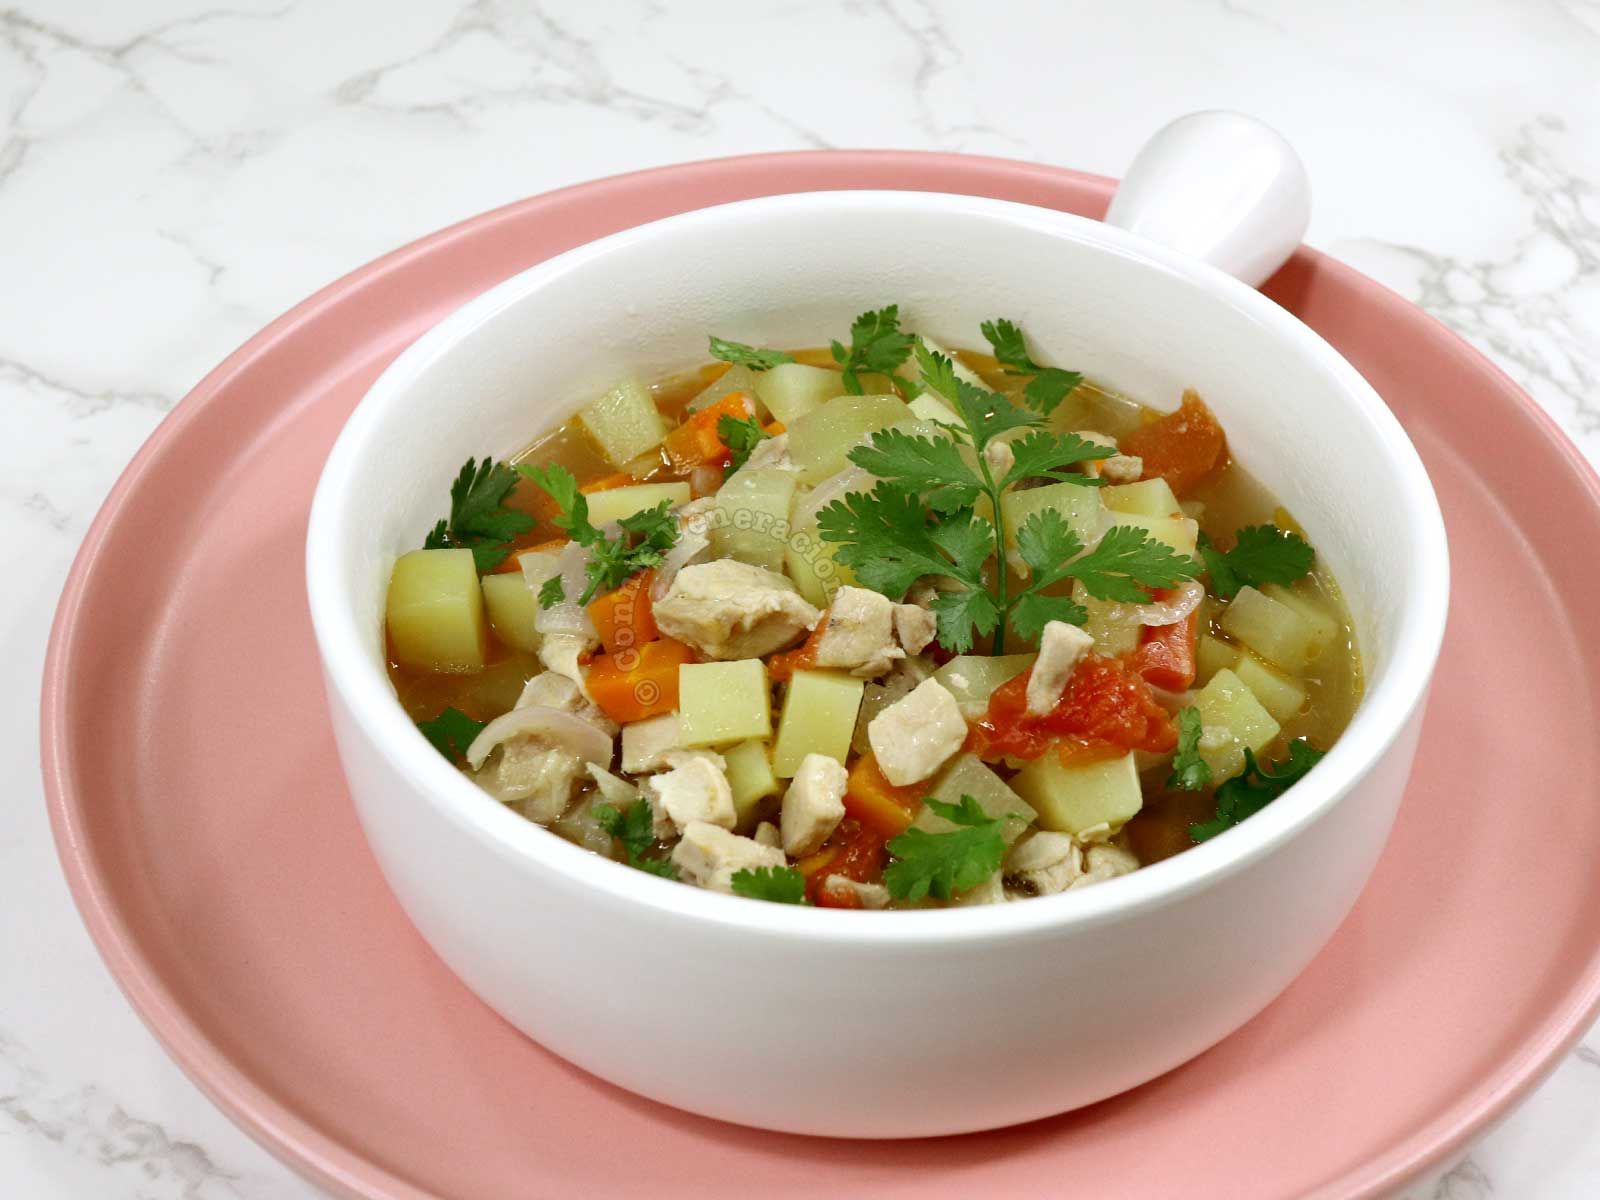 Filipino chicken picadillo soup garnished with cilantro